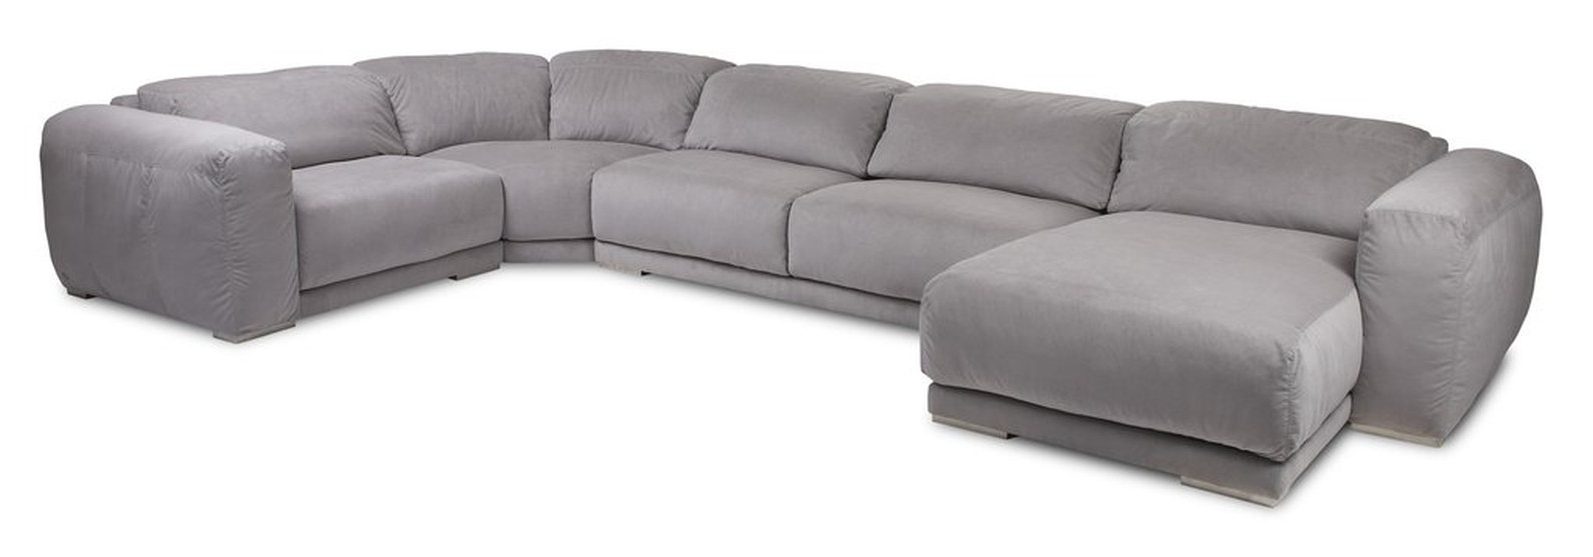 Sectional Sofa: Sectional Sofa Ottawa Dramatic Charming Sofa Sale Throughout Well Known Gatineau Sectional Sofas (View 4 of 20)